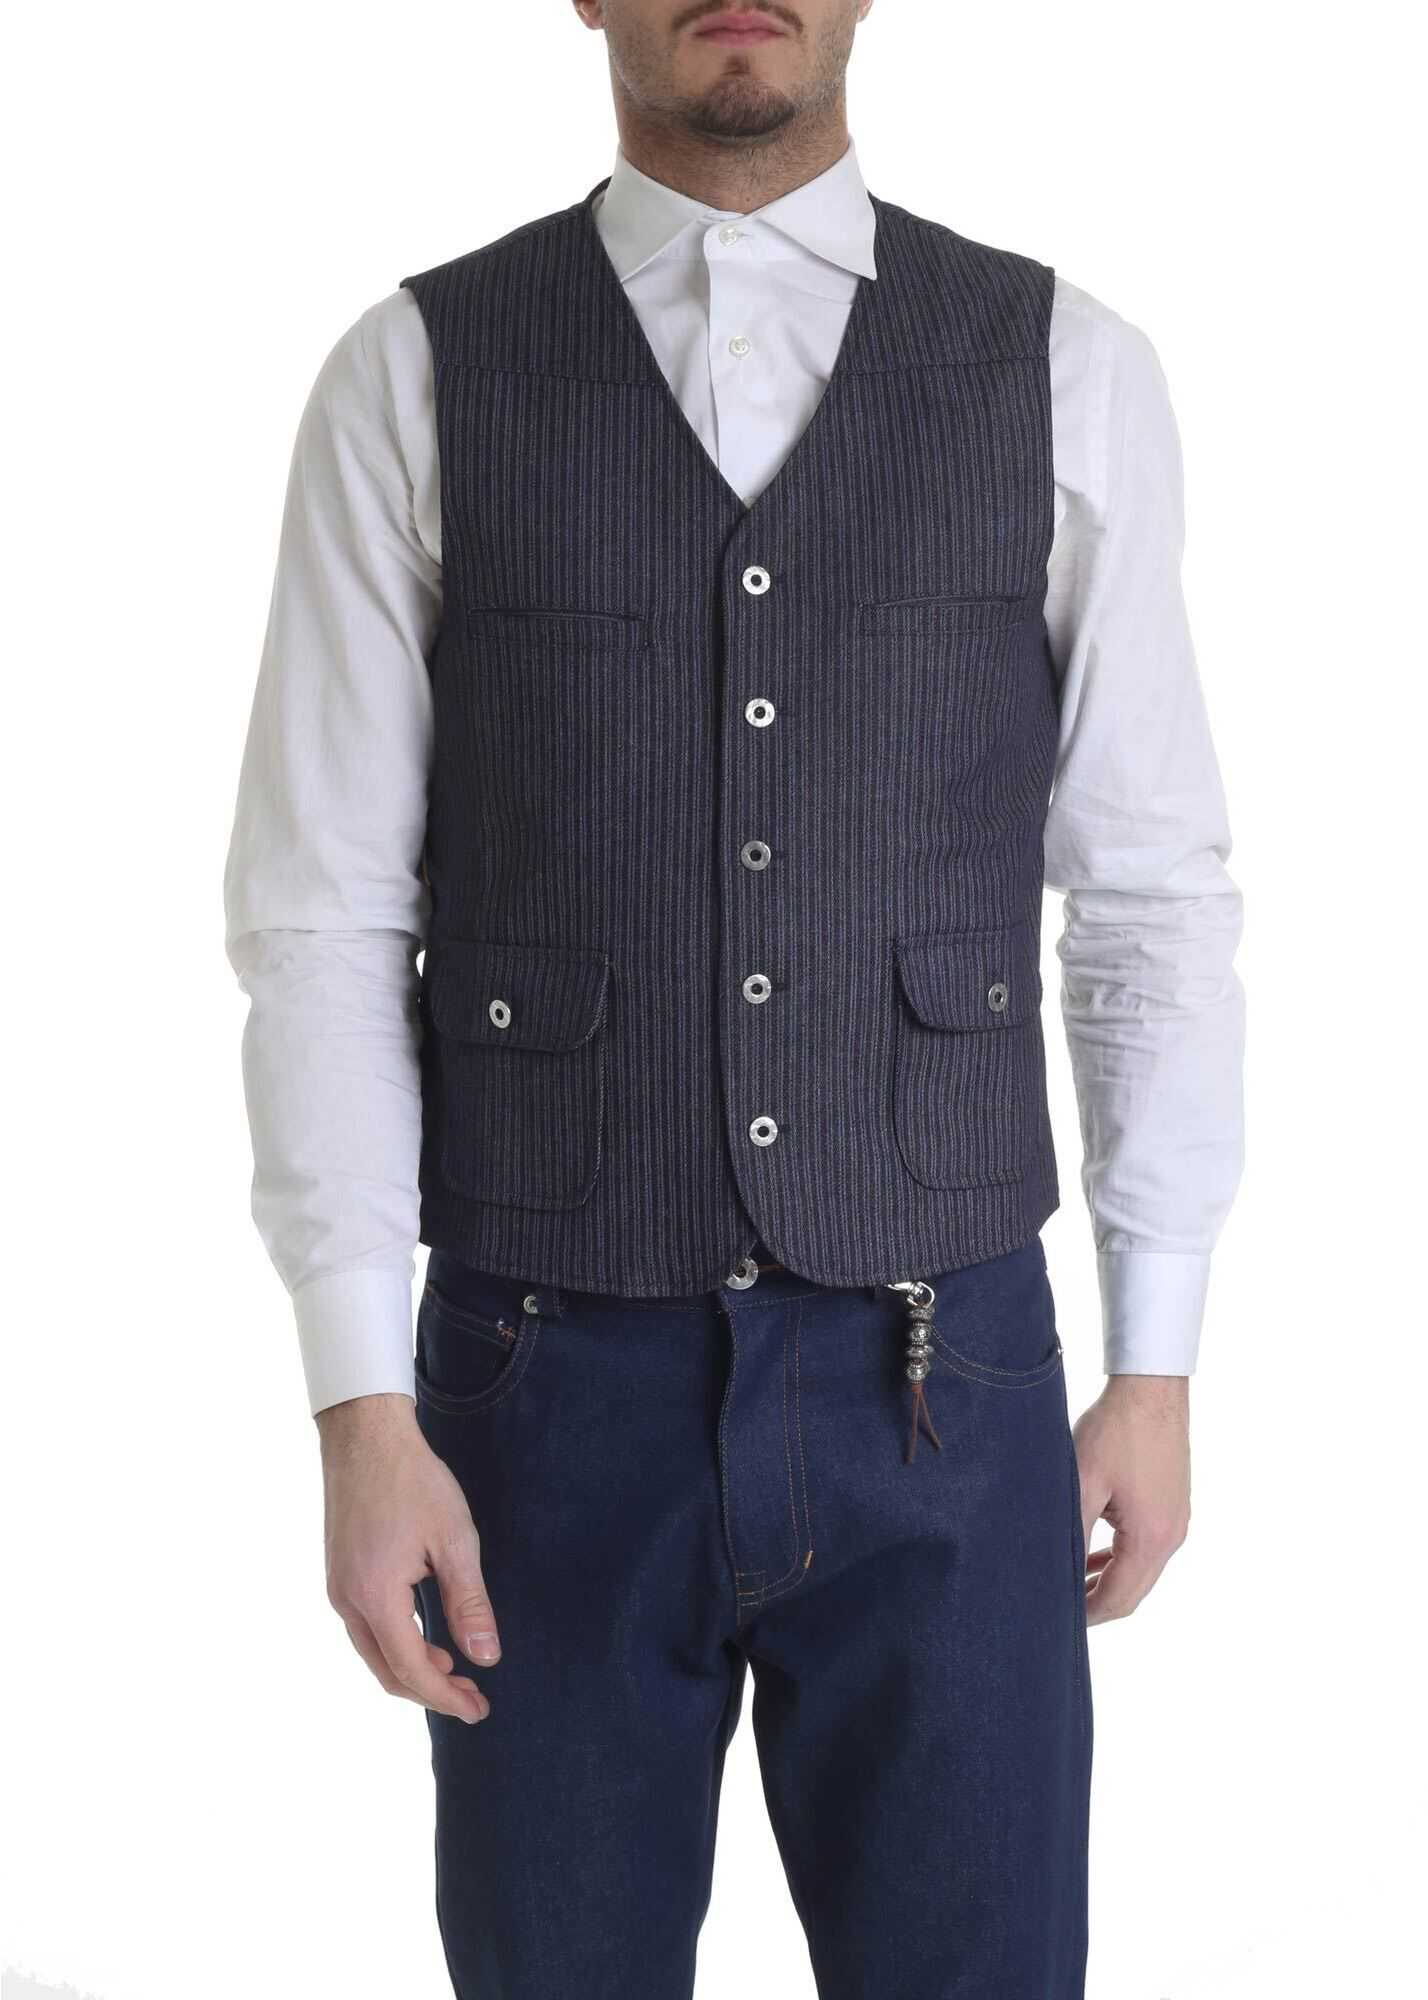 Ribbon Clothing Blue And White Waistcoat With Stripes Blue imagine